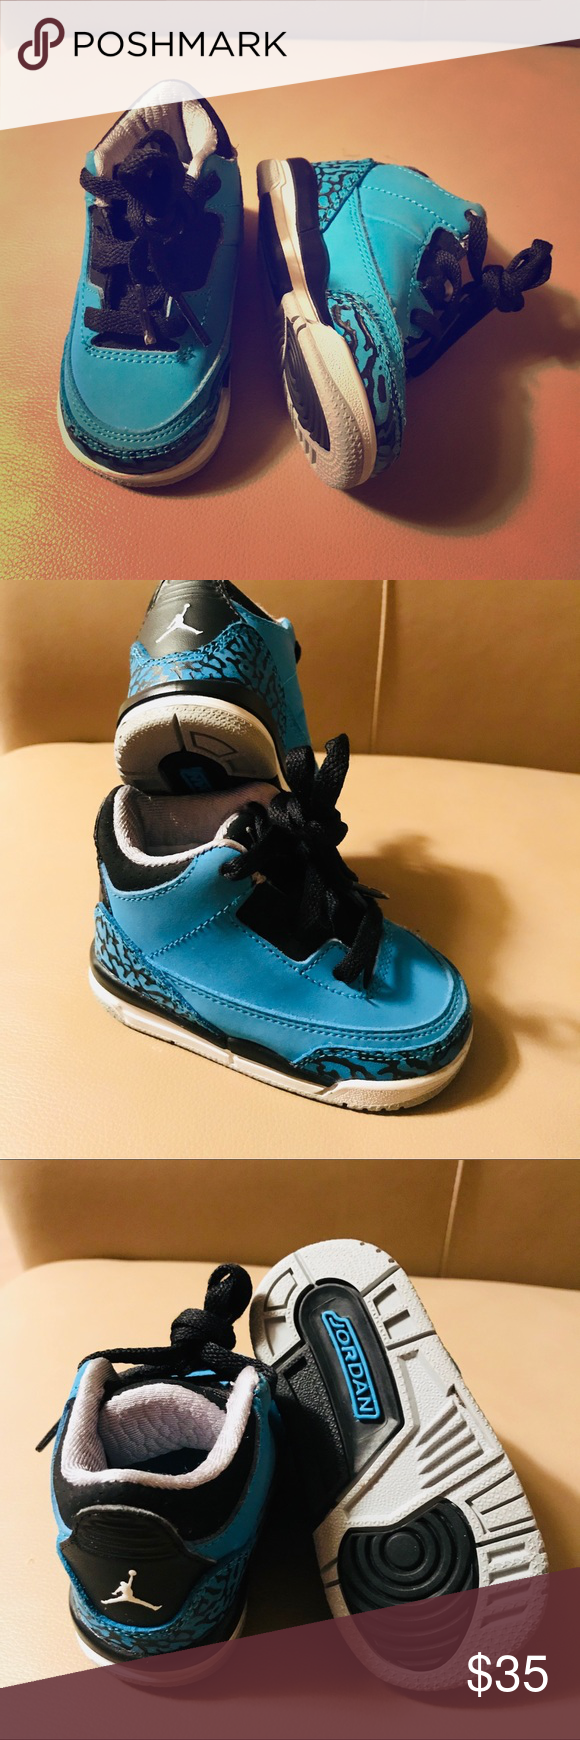 on sale 5cd58 9600f Powder blue 4s Retro 4 jordans powder blues size 4c in great ...